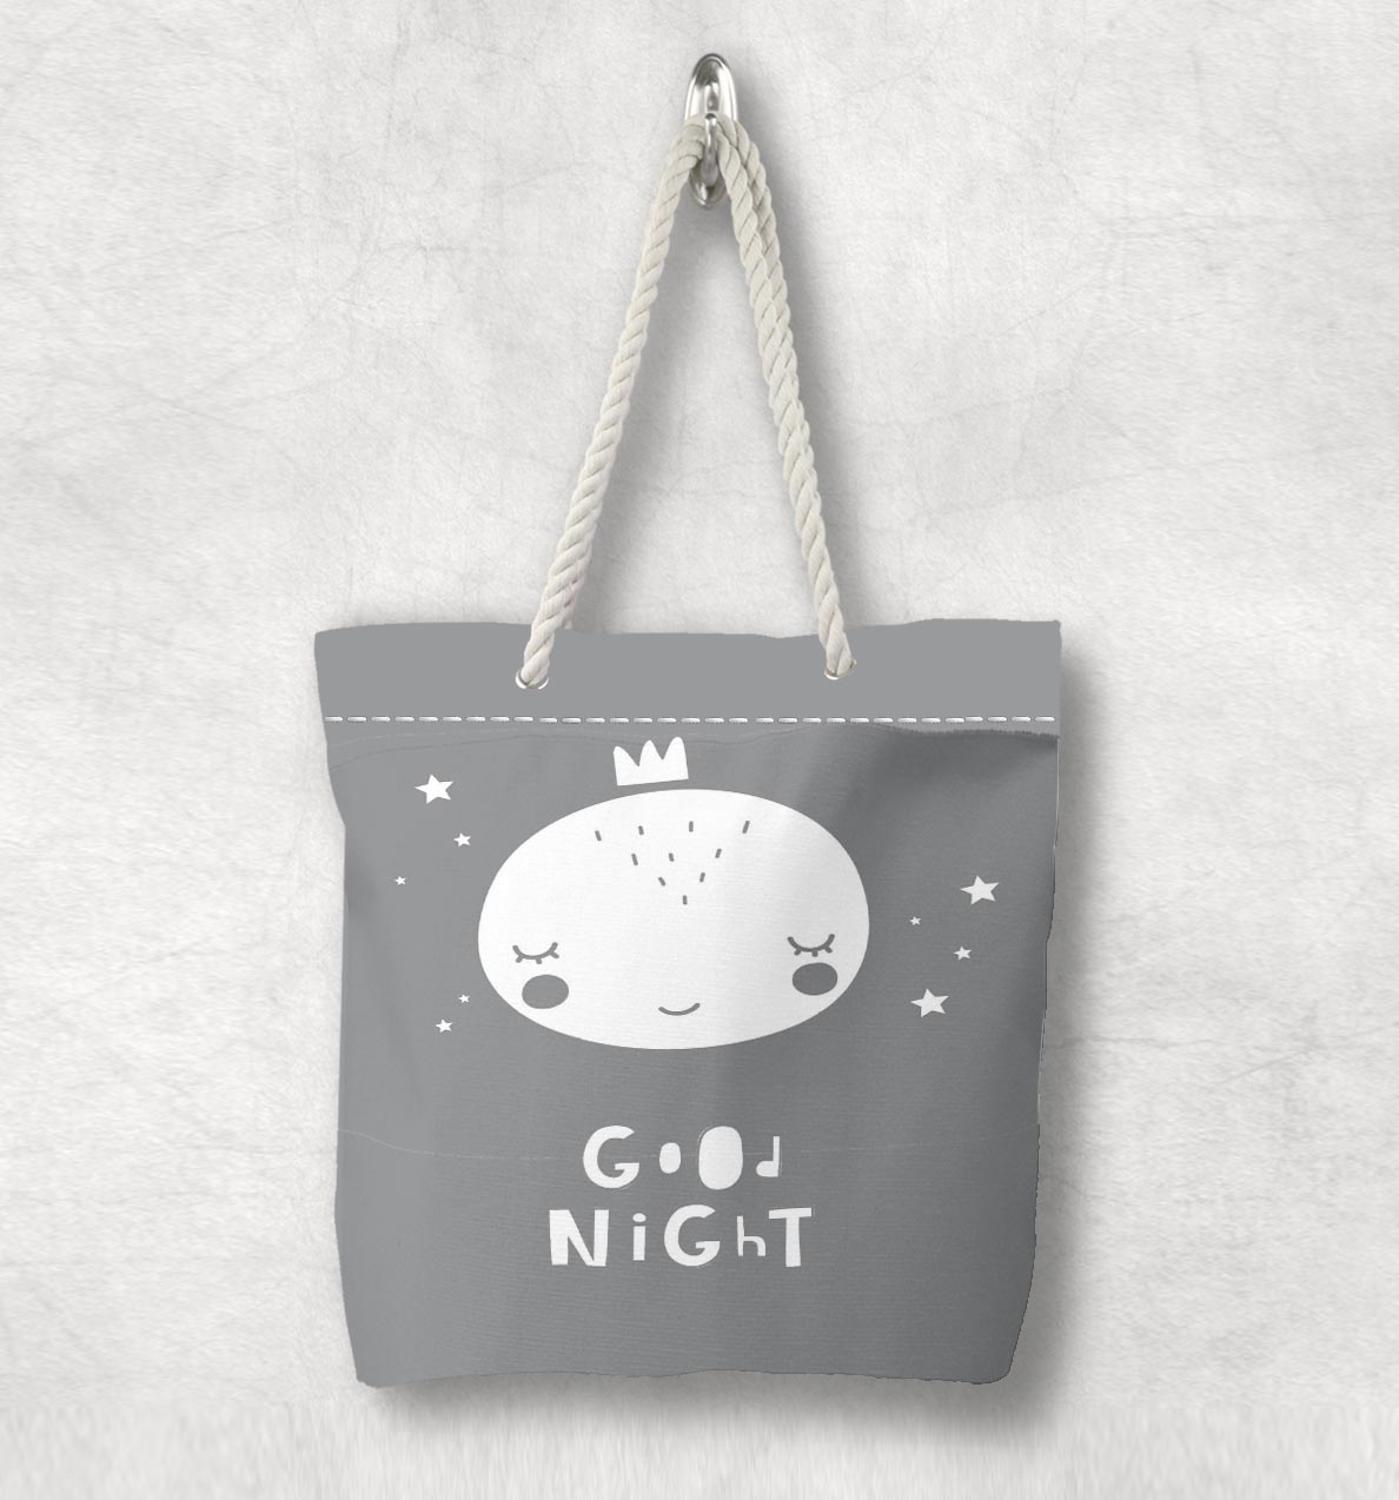 Else Gray White Good Nigh Sleep Prince  Scandinavian White Rope Handle Canvas Bag  Cartoon Print Zippered Tote Bag Shoulder Bag